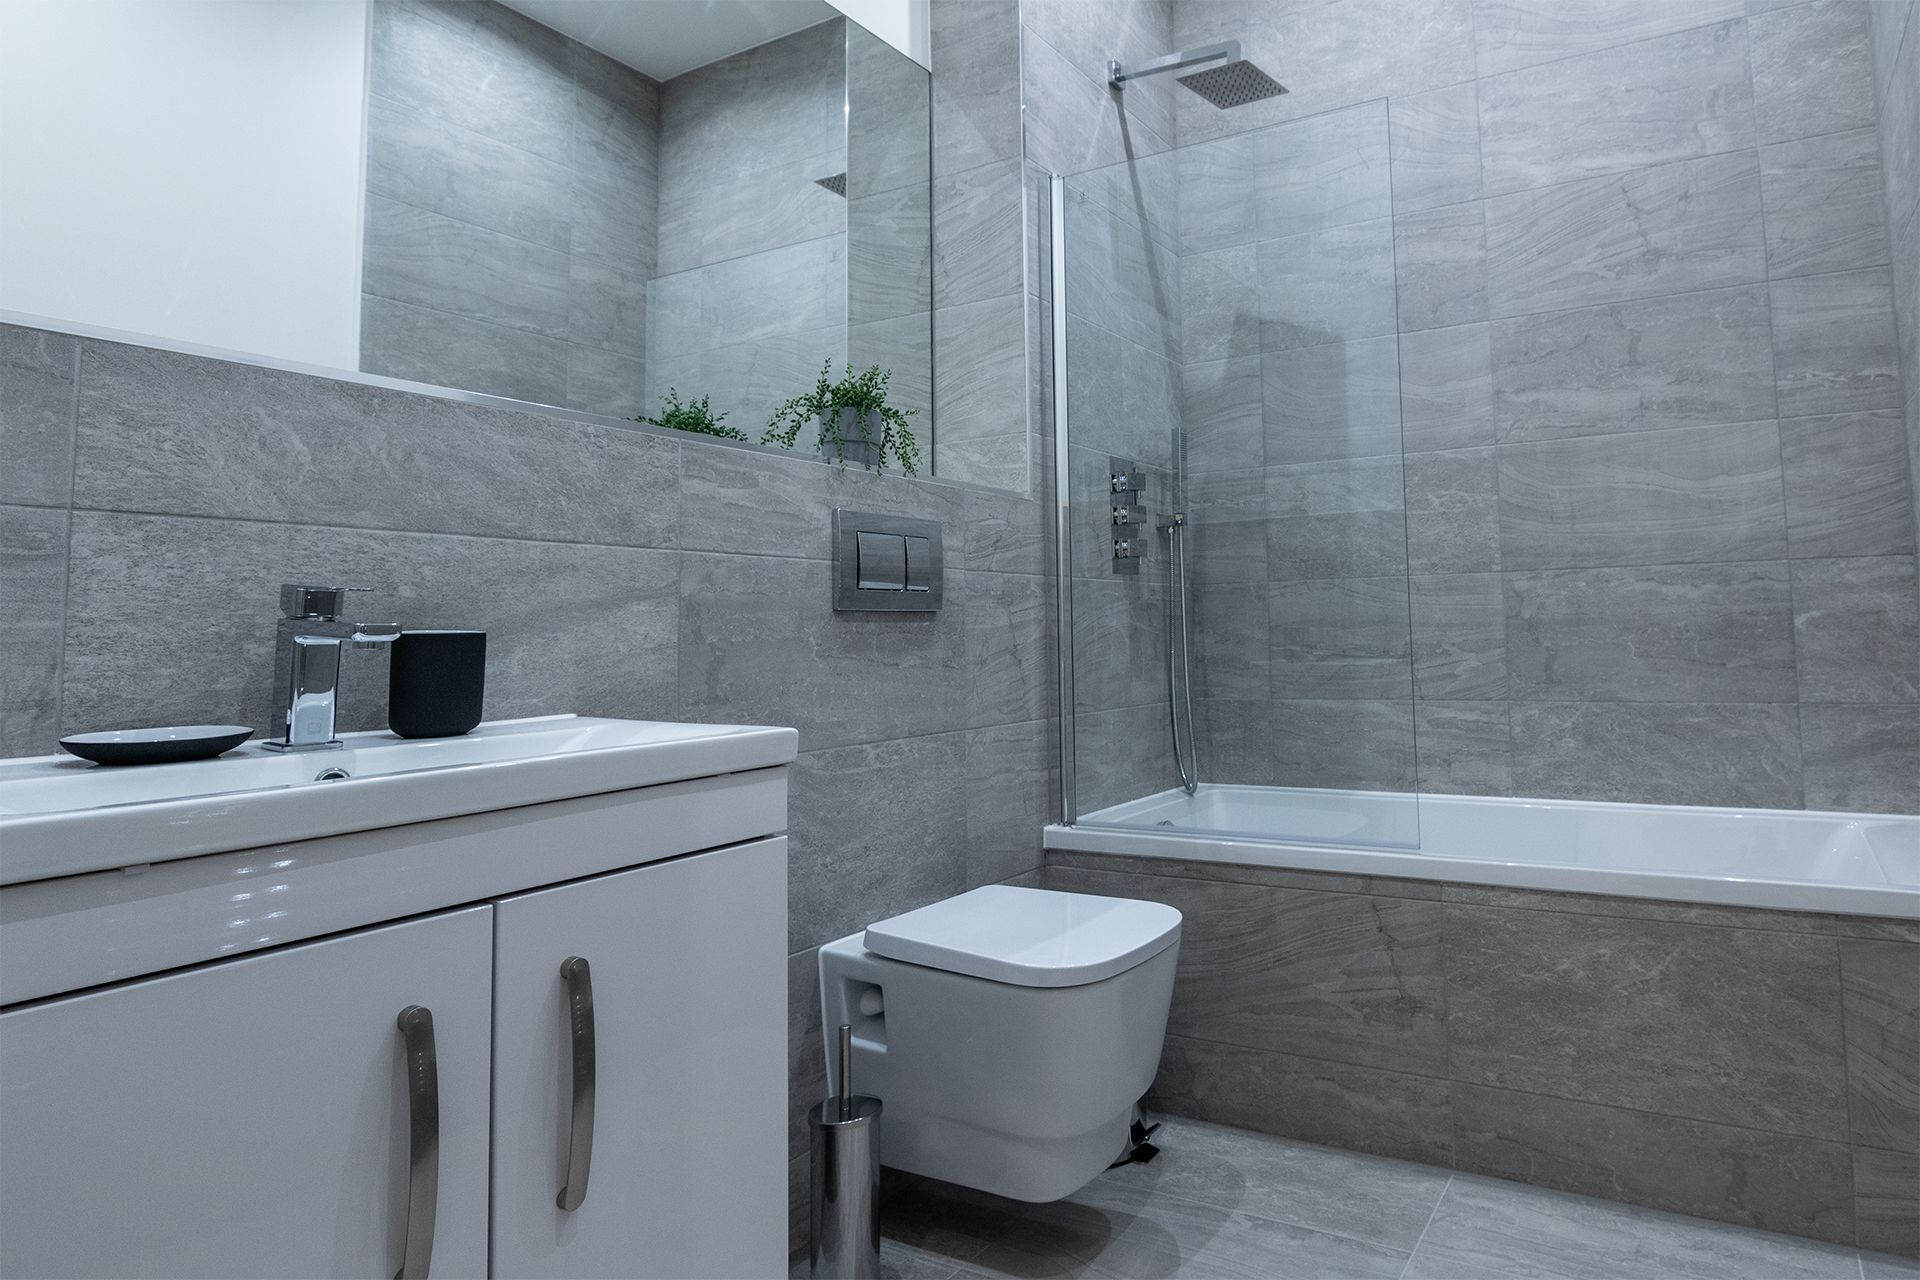 2 Bedroom apartment to rent in London VIL-PI-0022